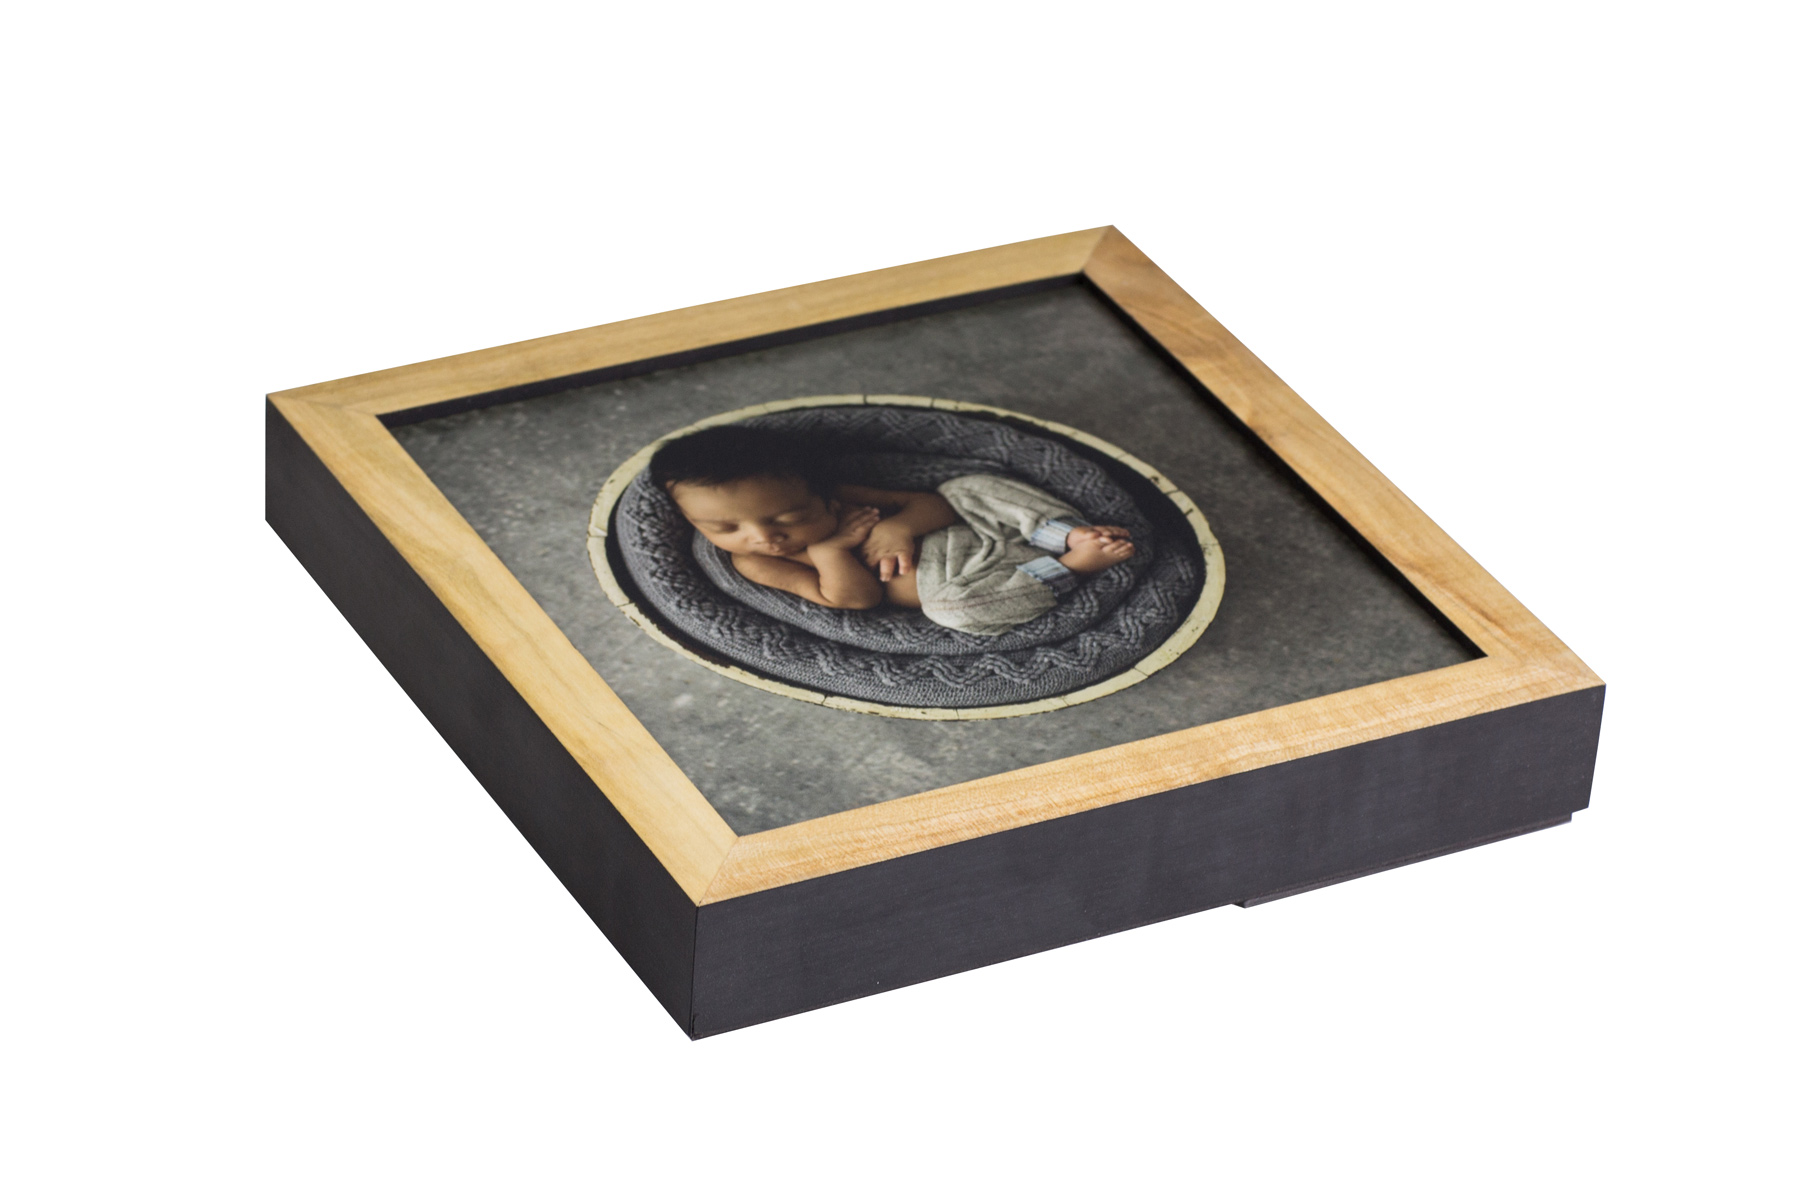 Frames - Add beautiful frames to your prints!Options hereAll Fine Art Prints are mounted to Styrene to perfectly fit the frame.Add a Mat, available in three different colors. Choose from Double White, Double Black, Double Gray, White, Black, and Gray.Add Glare-Resistant Acrylic to protect the surface of your prints. The matte finish of Glare-Resistant Acrylic diffuses light to reduce unwanted glare and offer UV protection.